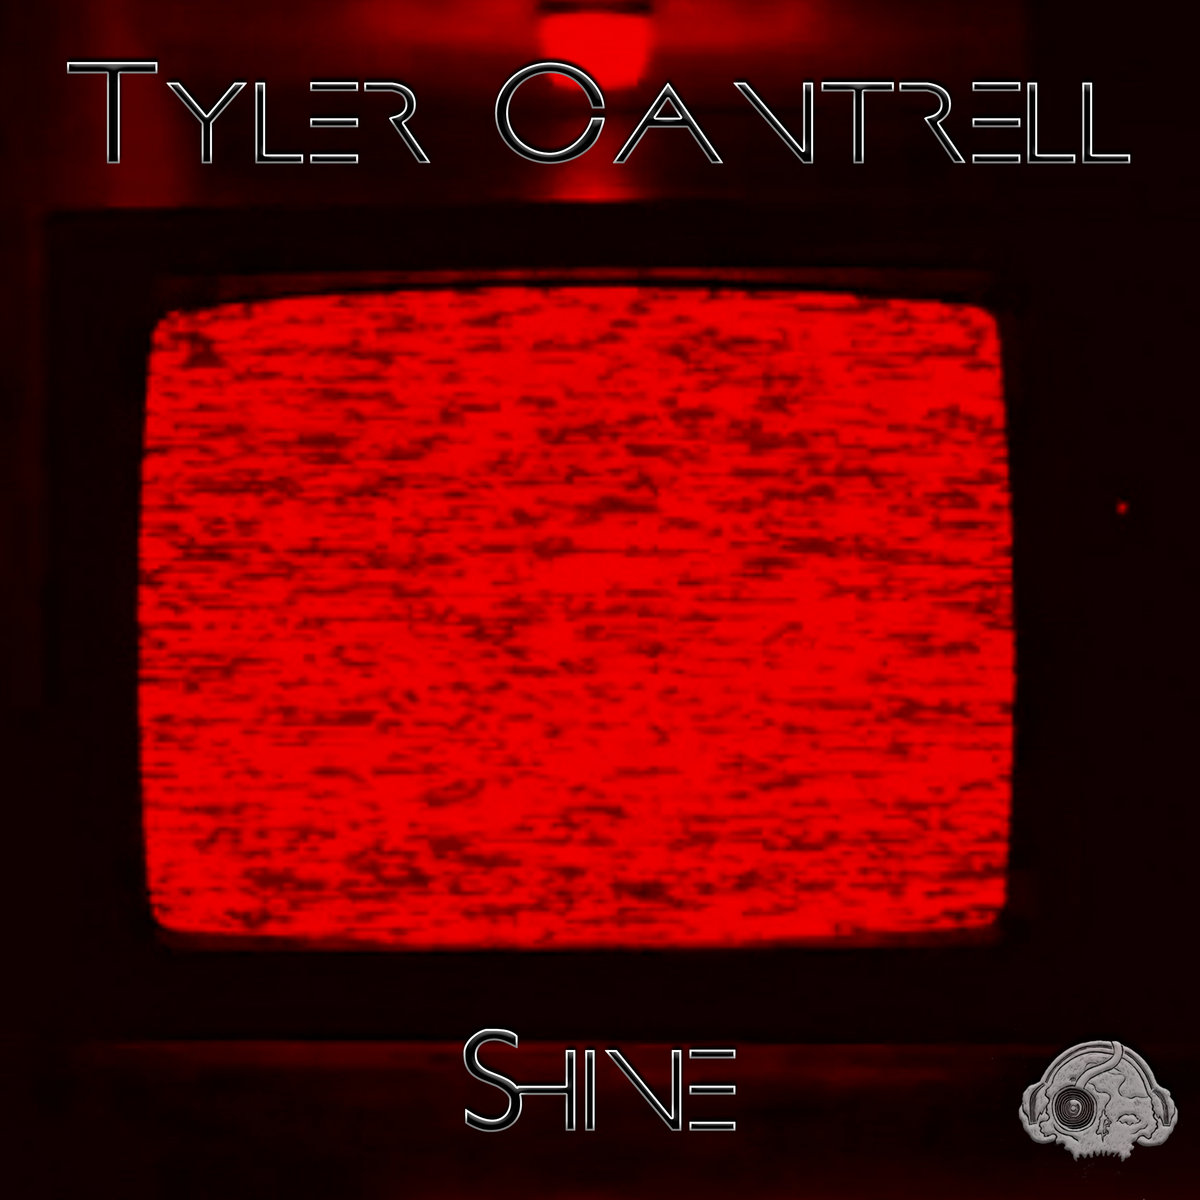 Shine by Tyler Cantrell